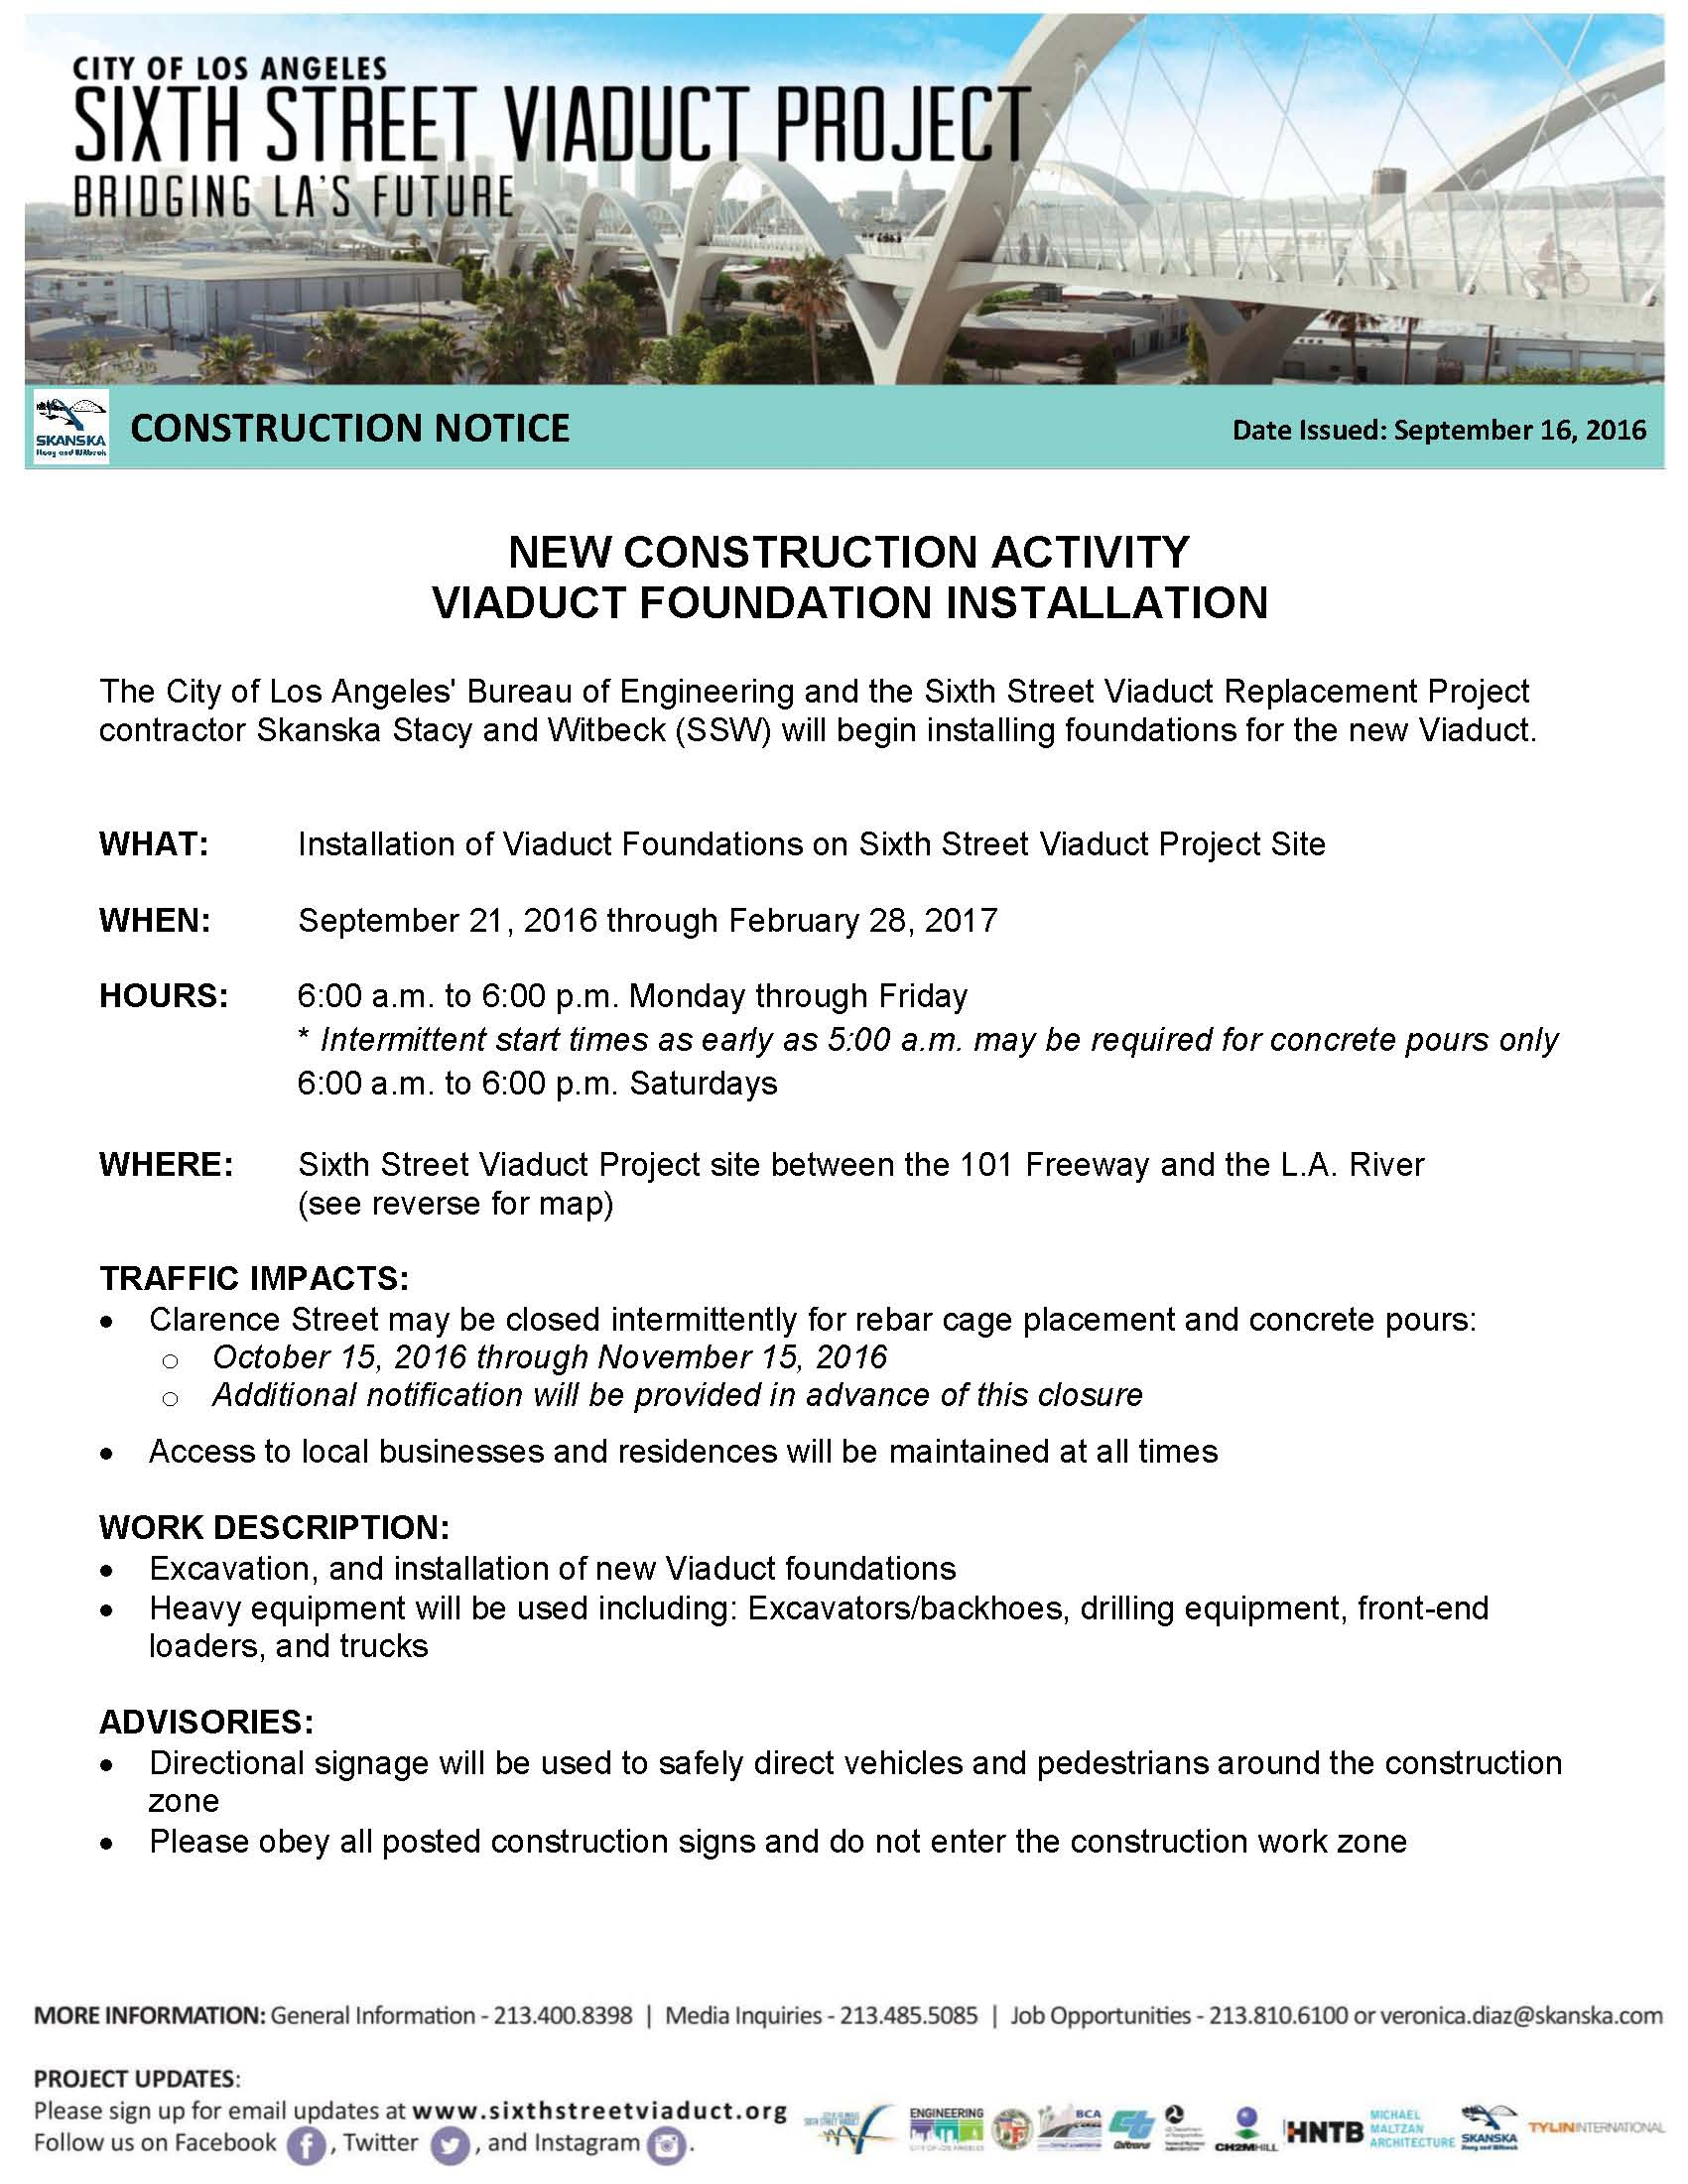 2016-09-16_SSW_Construction_Notice_-_Foundation_Installation_Page_1.jpg